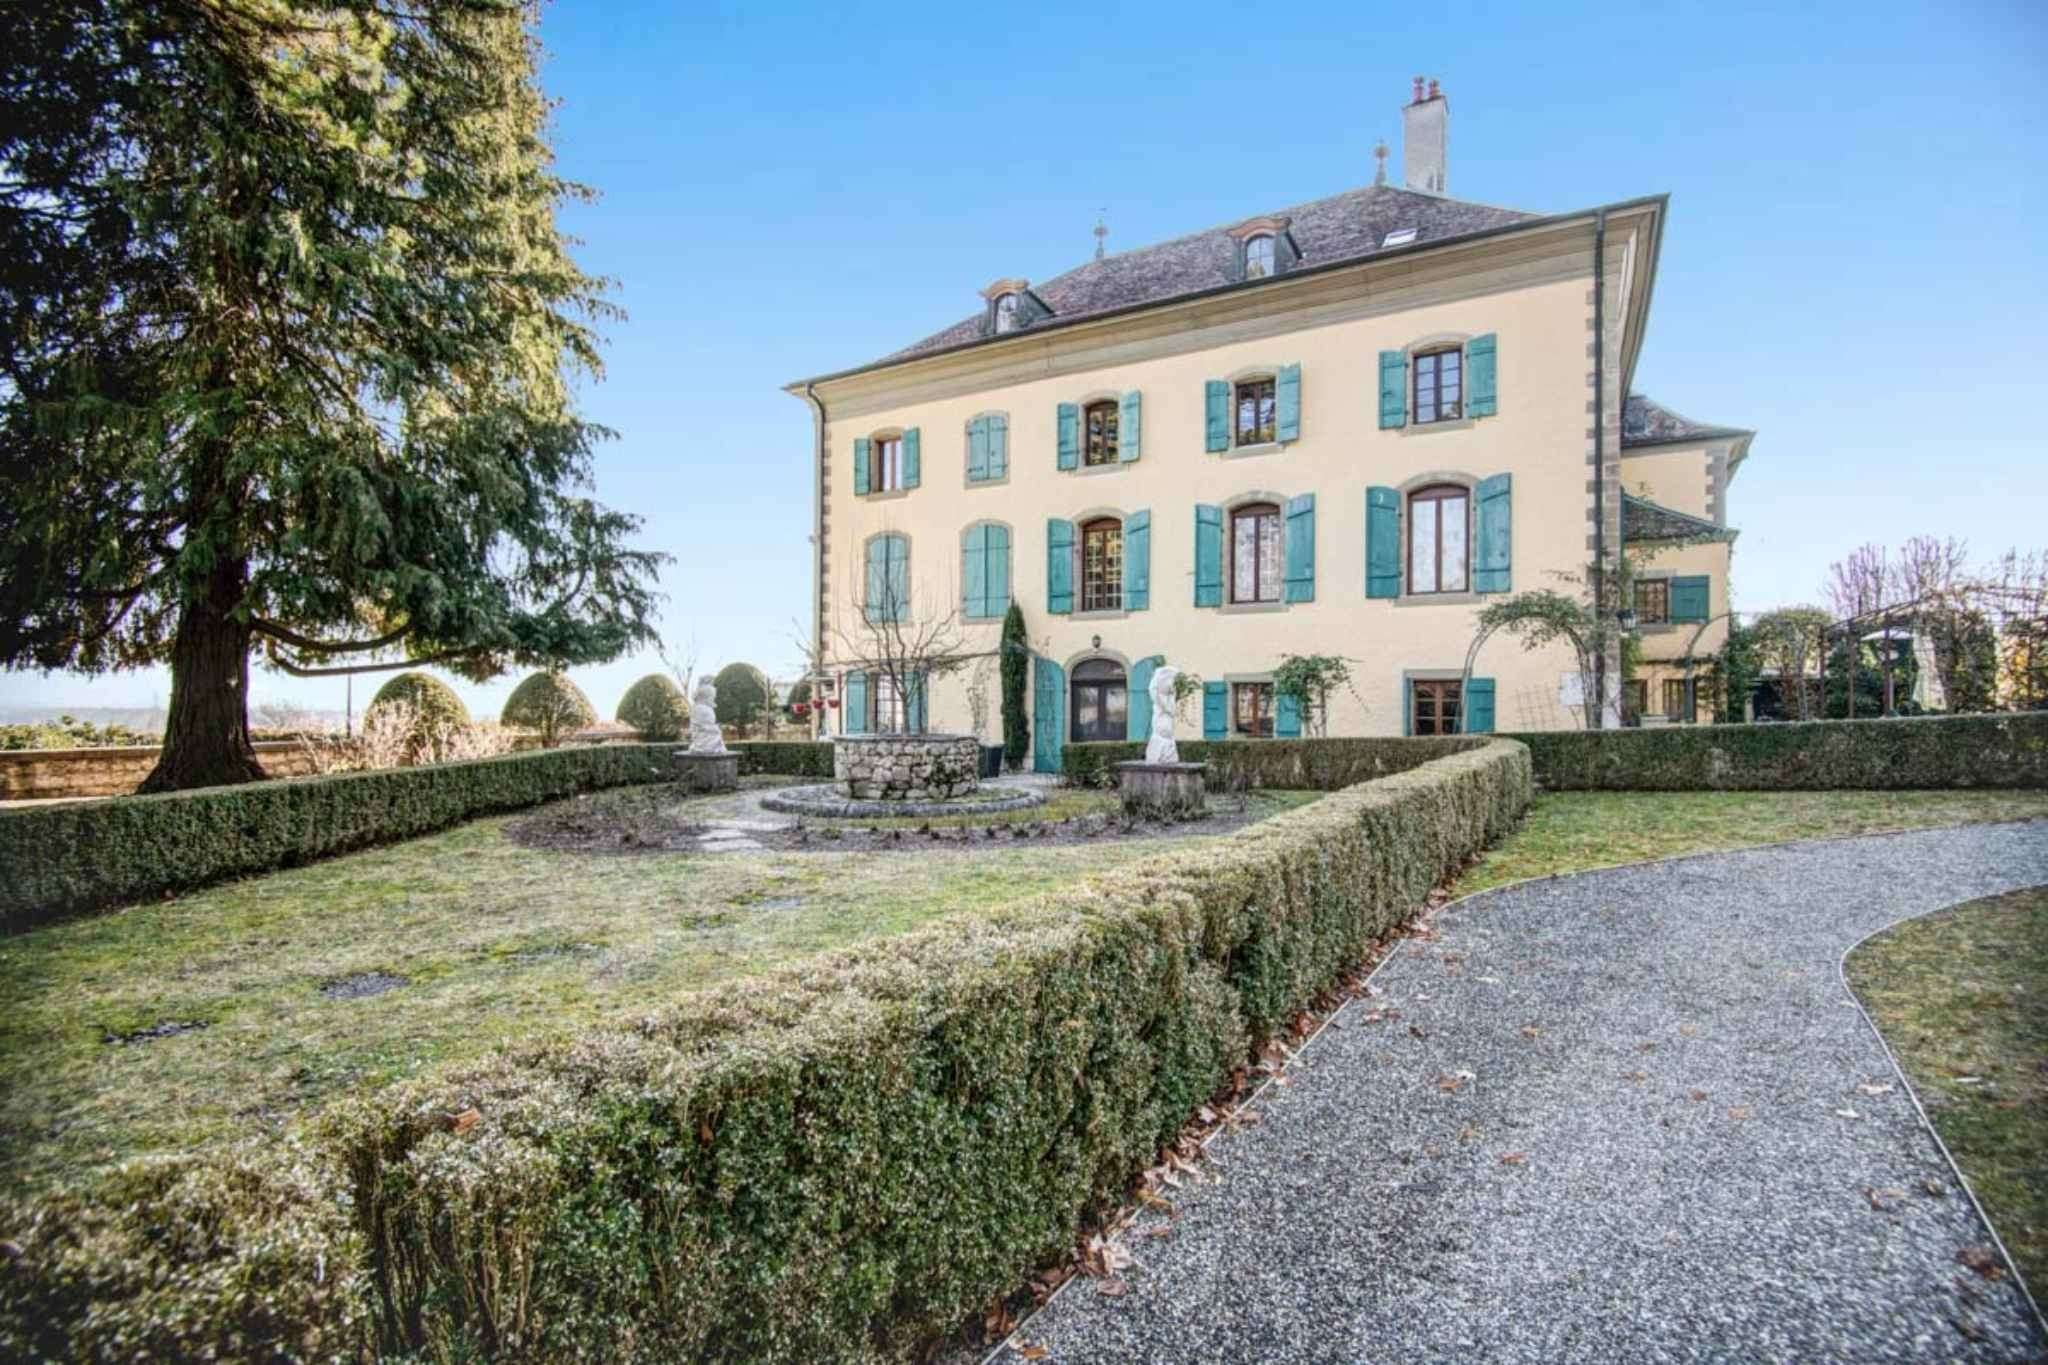 8 room apartment in the center of the Geneva vineyards